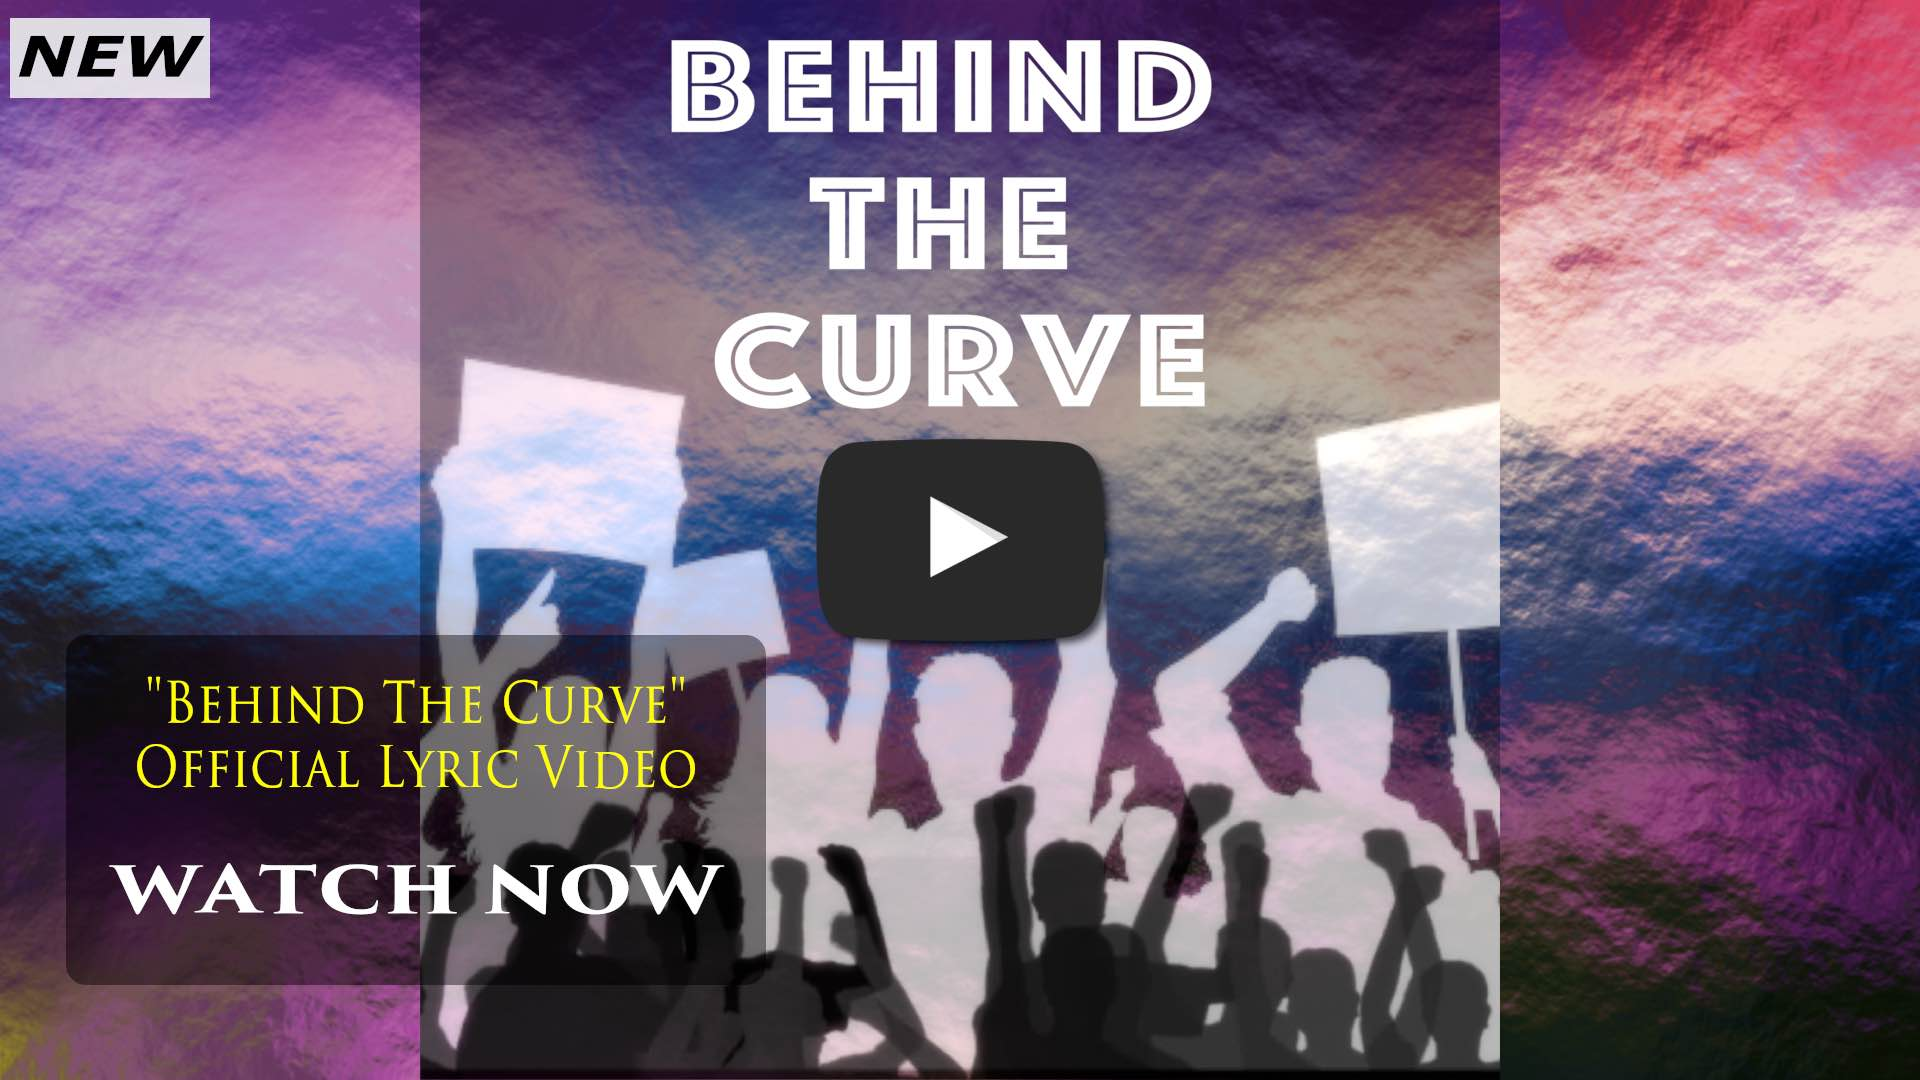 Behind The Curve Official Lyric Video Watch Now